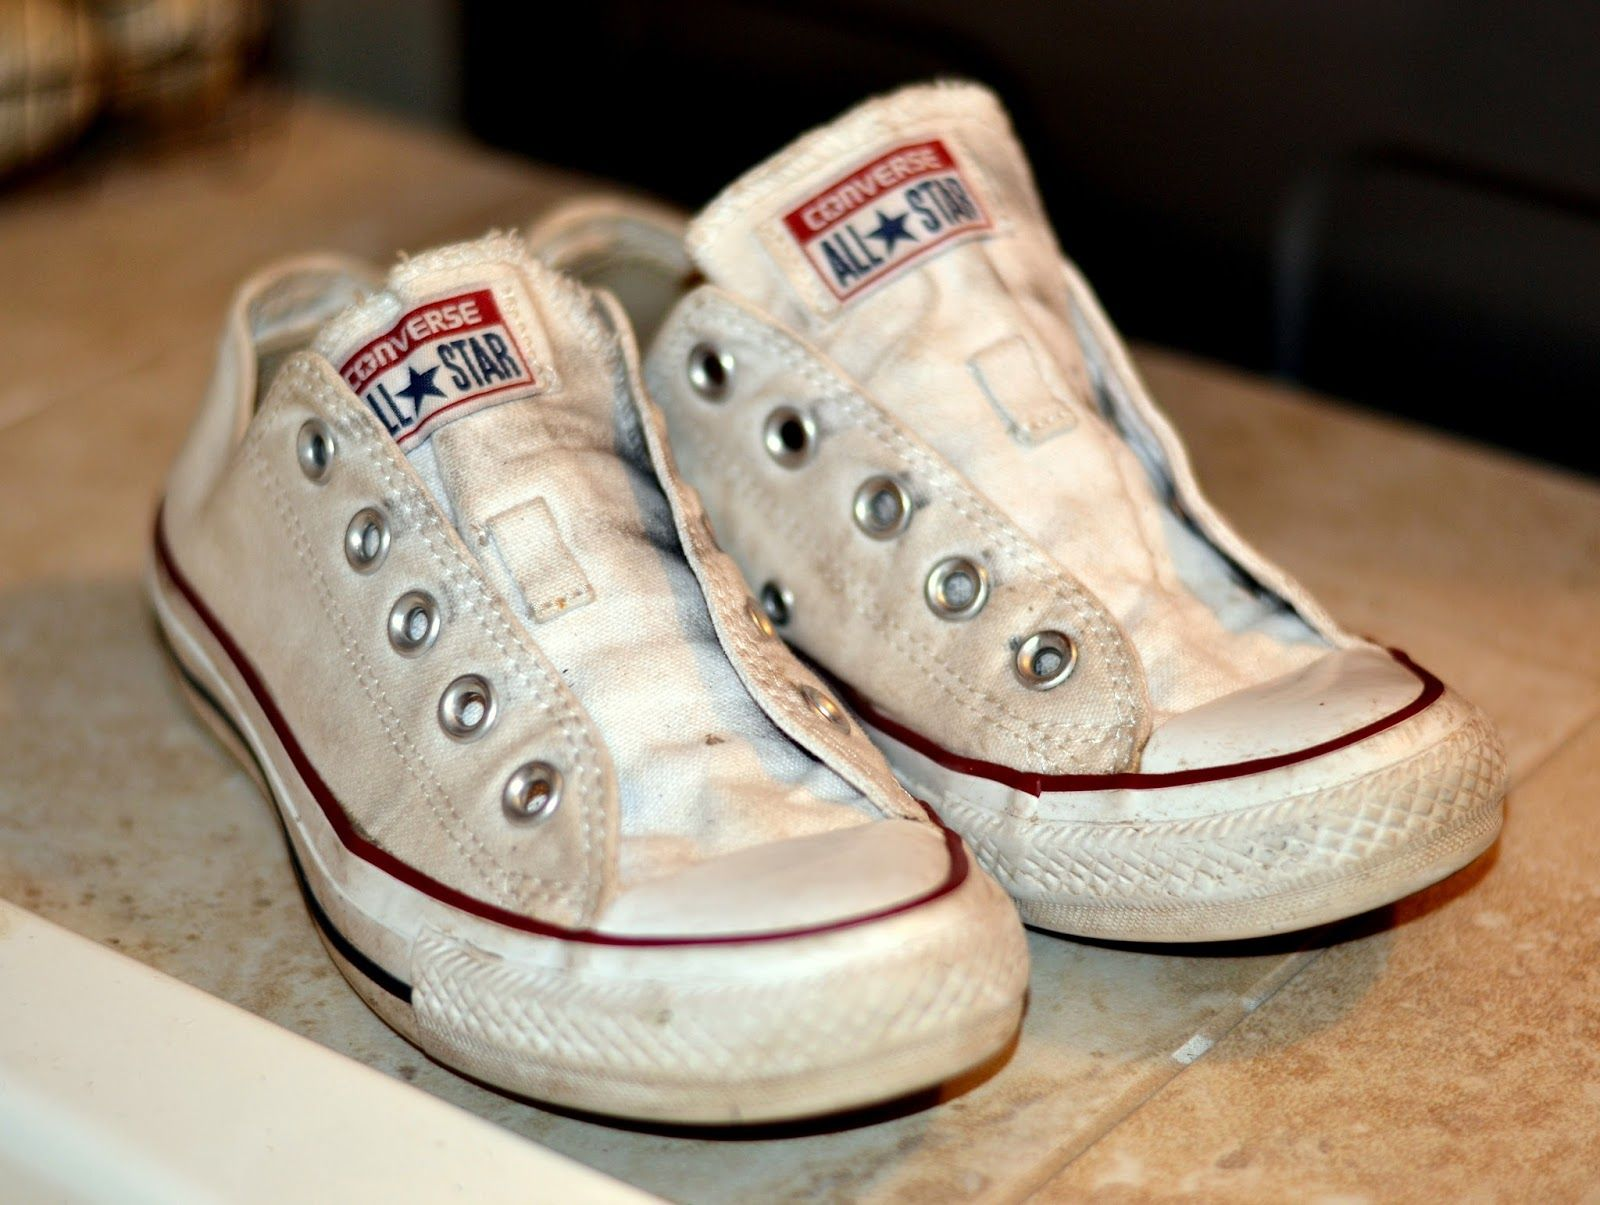 b2c9c9dd03da How to clean and whiten your white Converse or canvas shoes to make them  look new again.